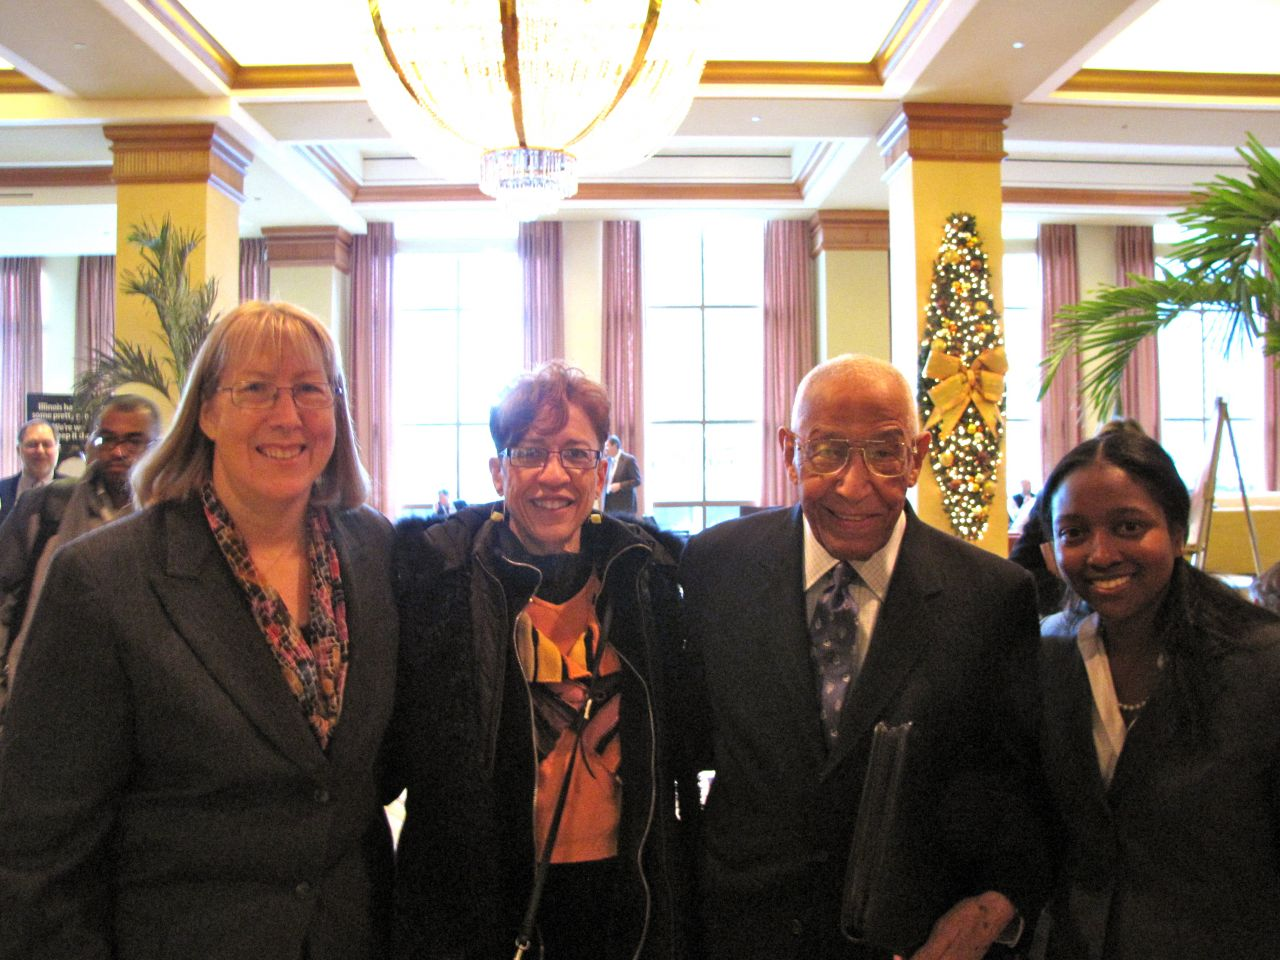 From left (click to enlarge): SIU Professor Alice Noble-Allgire, Judge Leighton's daughter, Barbara Whitfield, Judge Leighton and McHenry County Assistant State's Attorney Jameika Mangum